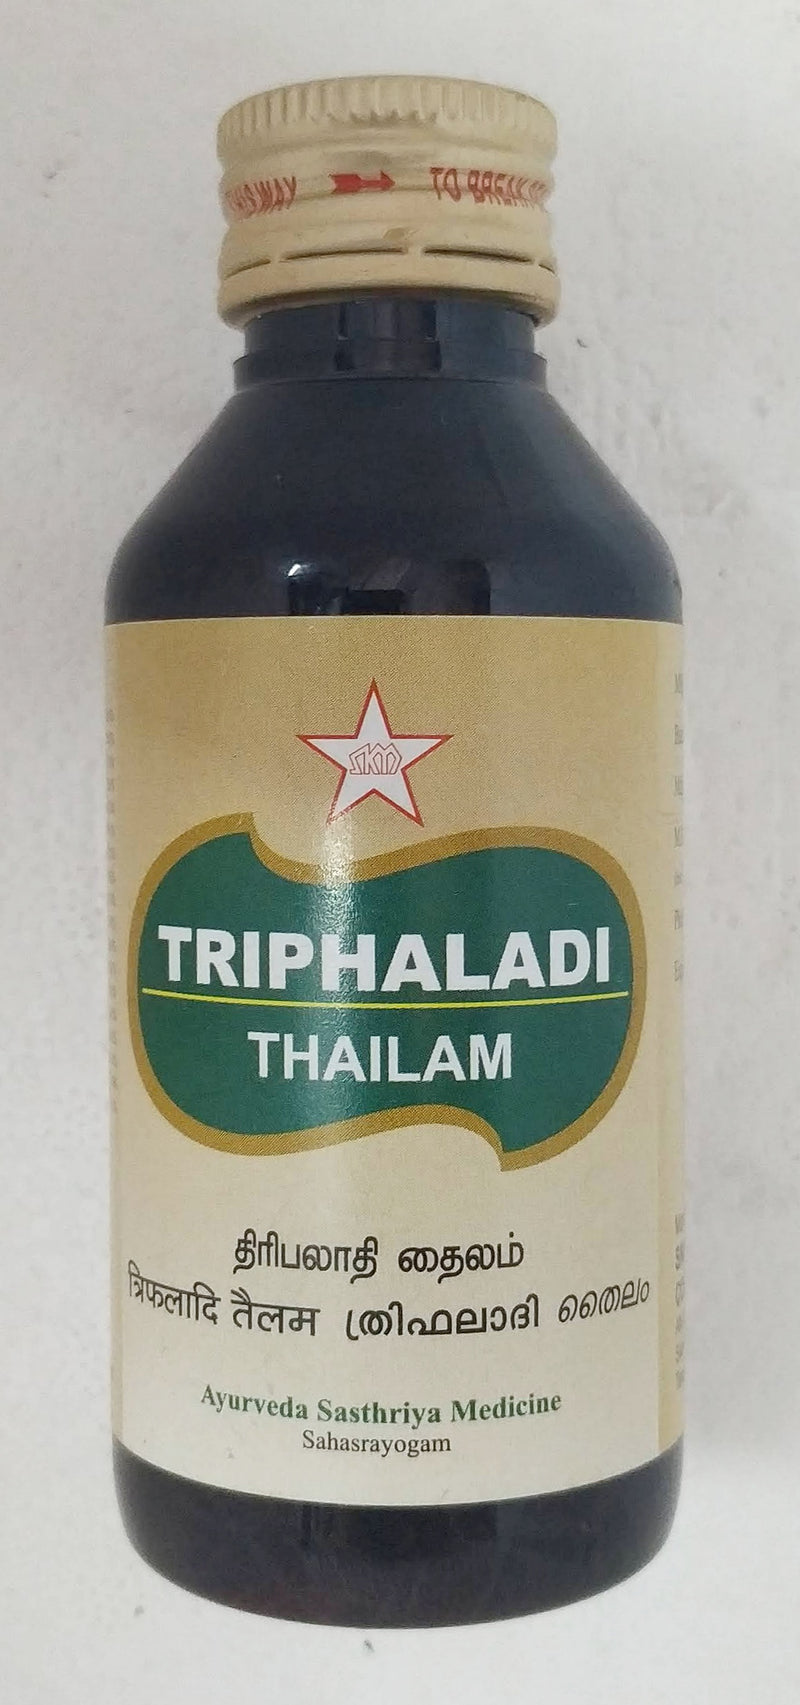 SKM Triphaladi Thailam 100ml (Ayurvedic) - Ayush Care